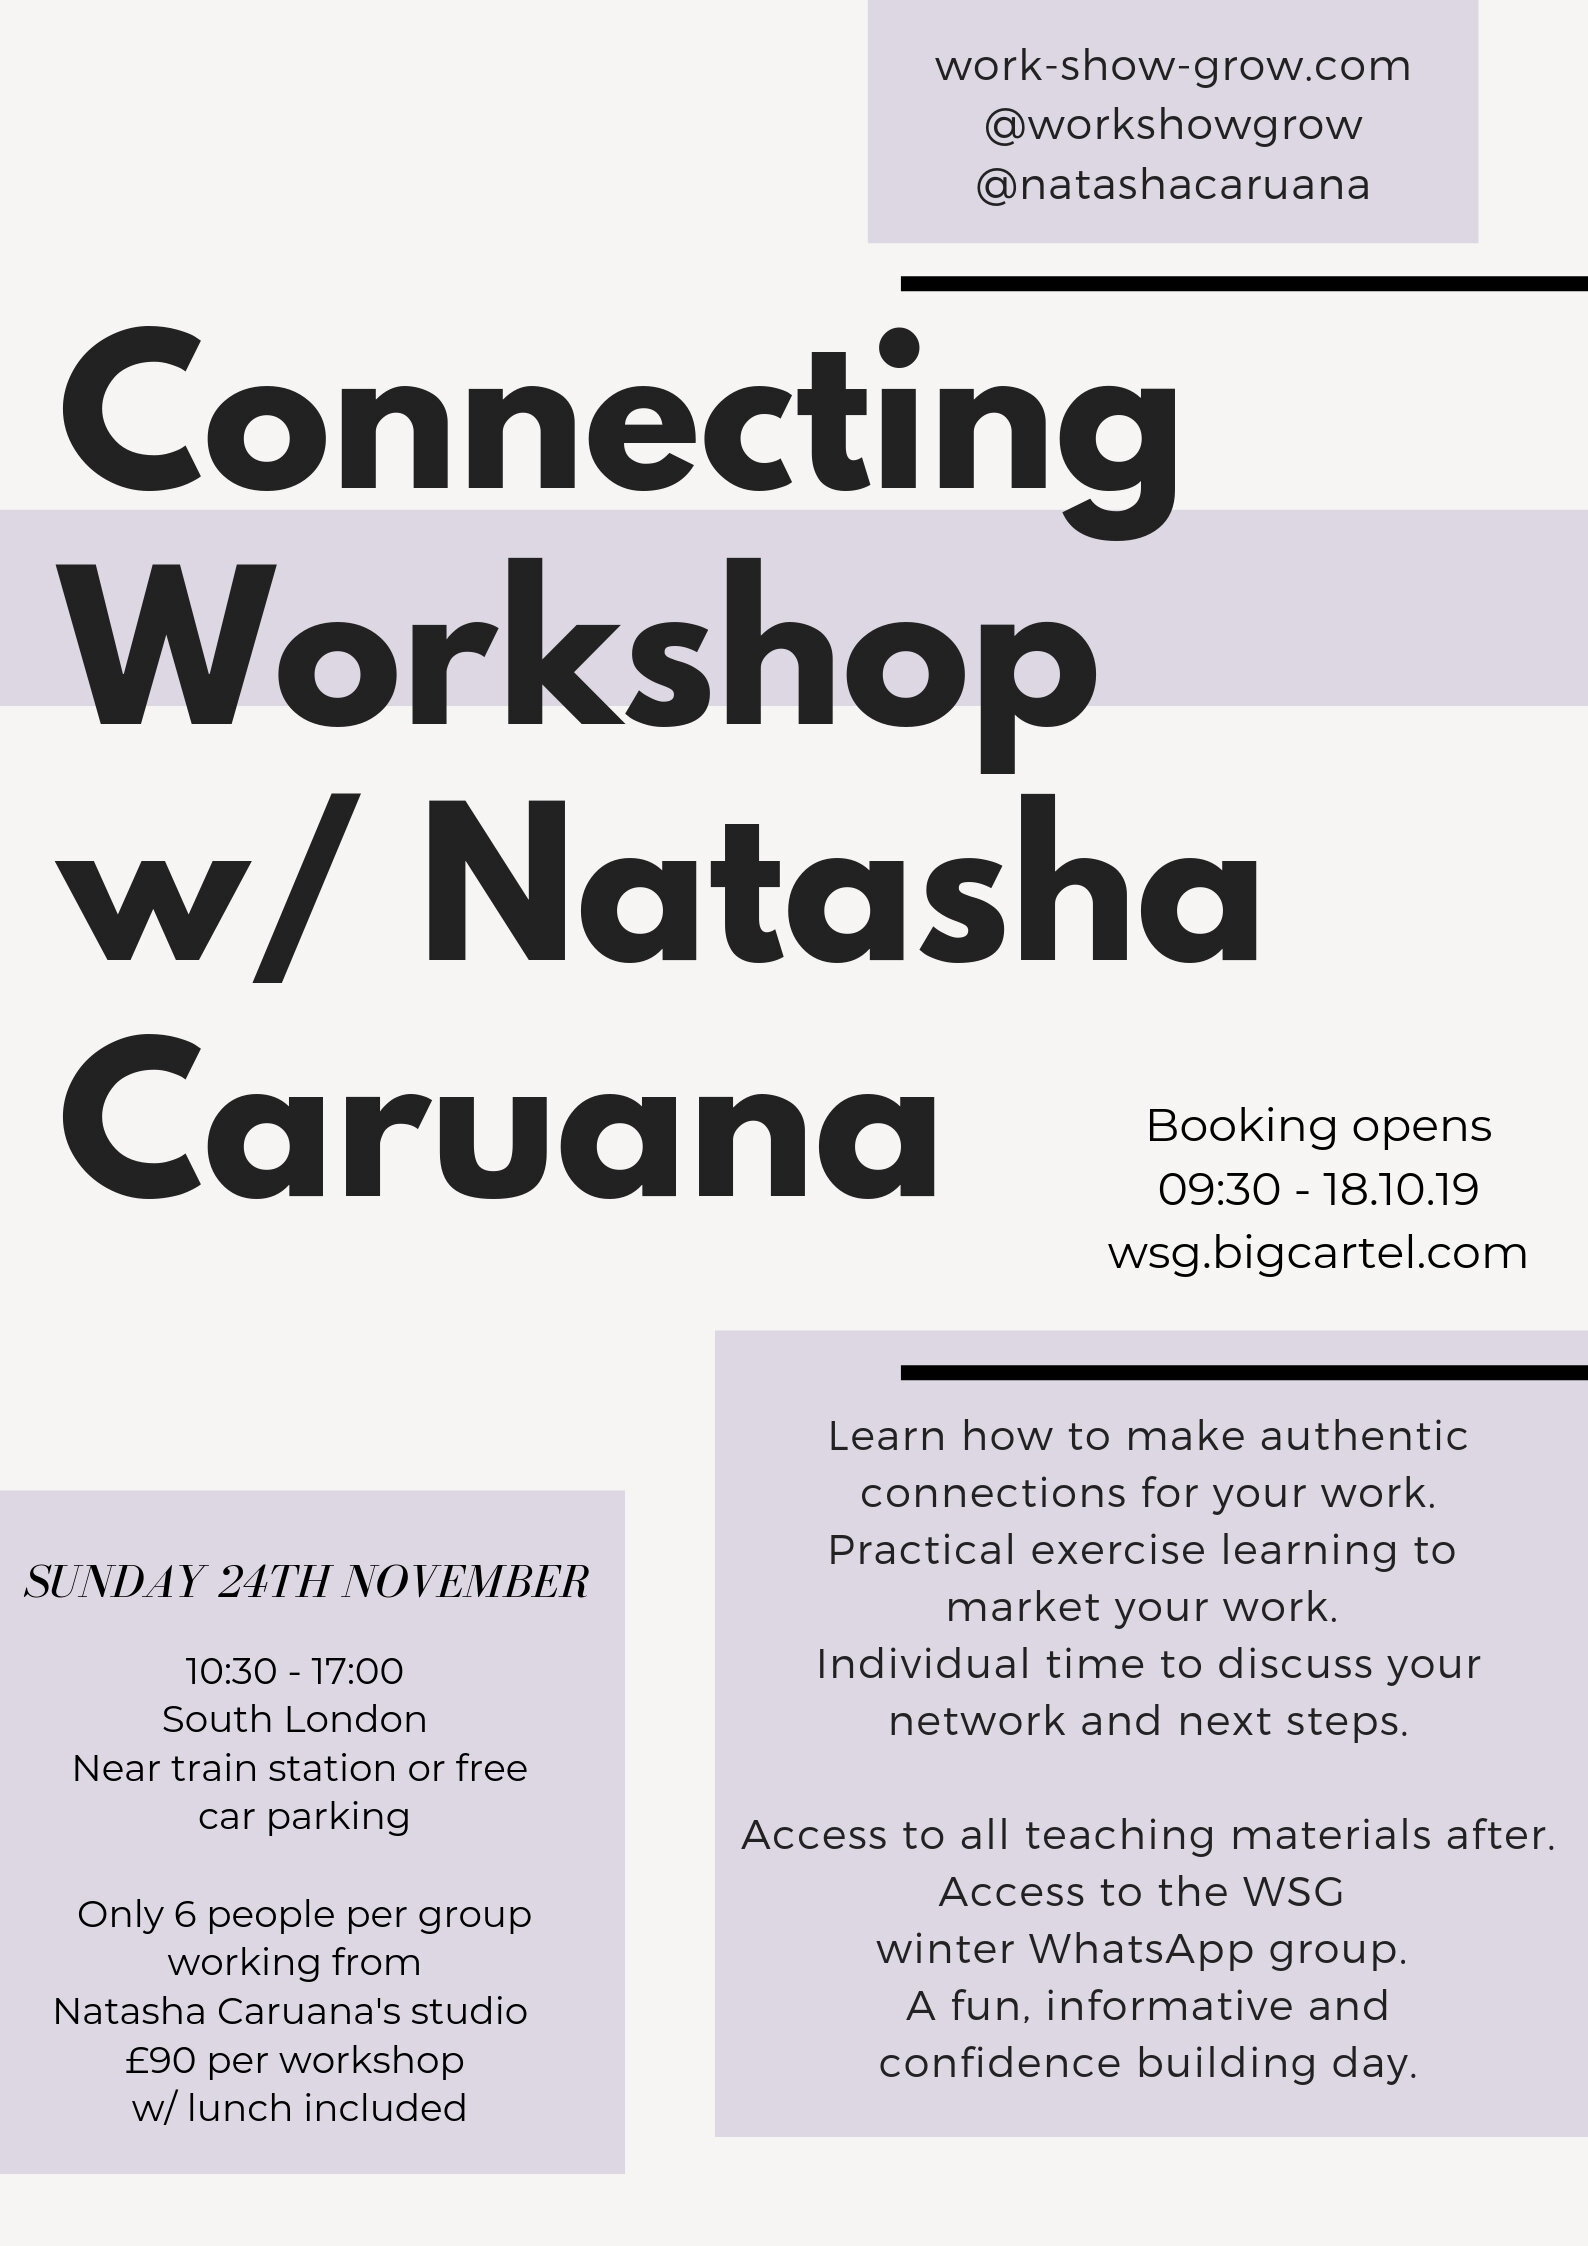 CONNECTING -Sunday 24th November10:30 - 17:00BOOK HERE - Learn how to make authentic connections for your work.Practical exercise learning to contact with people.Individual time to discuss your network and next steps.